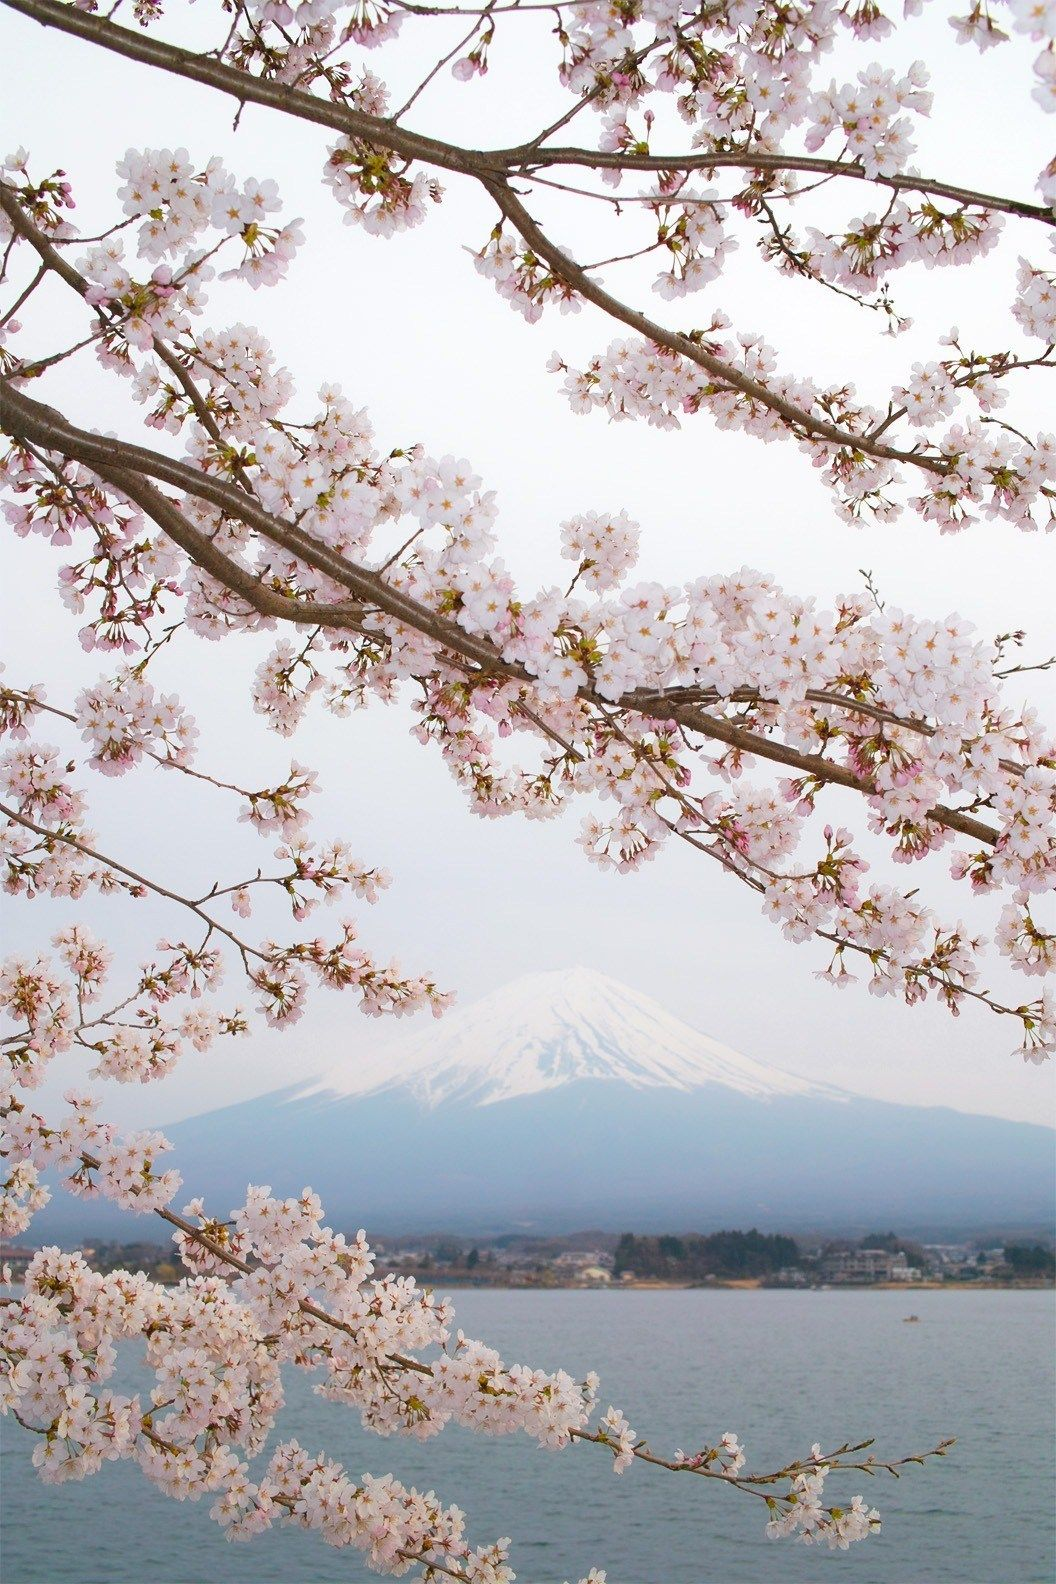 Spring In Japan 2019 When And Where To See The Cherry Blossoms Beautiful Nature Cherry Blossom Japan Japan